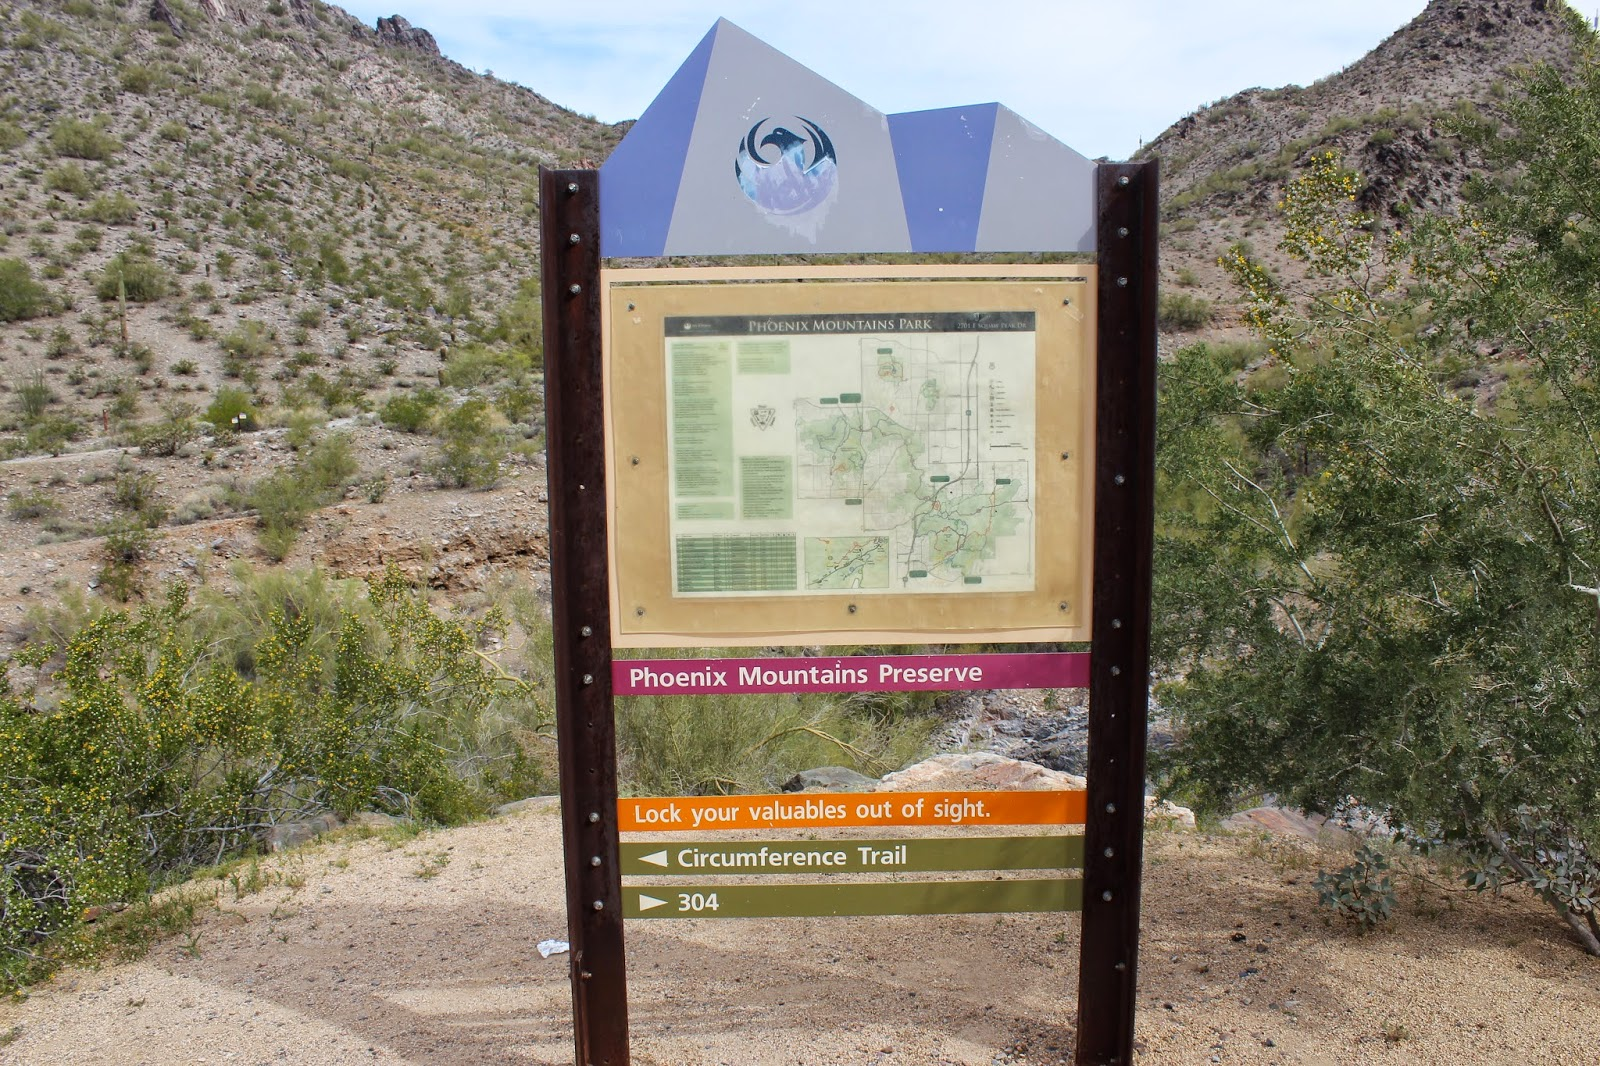 Gjhikes phoenix mountains nature trail the hike begins at the apache trailhead located at the end of squaw peak drive since people tend to park wherever they can find a spot the length of the sciox Choice Image